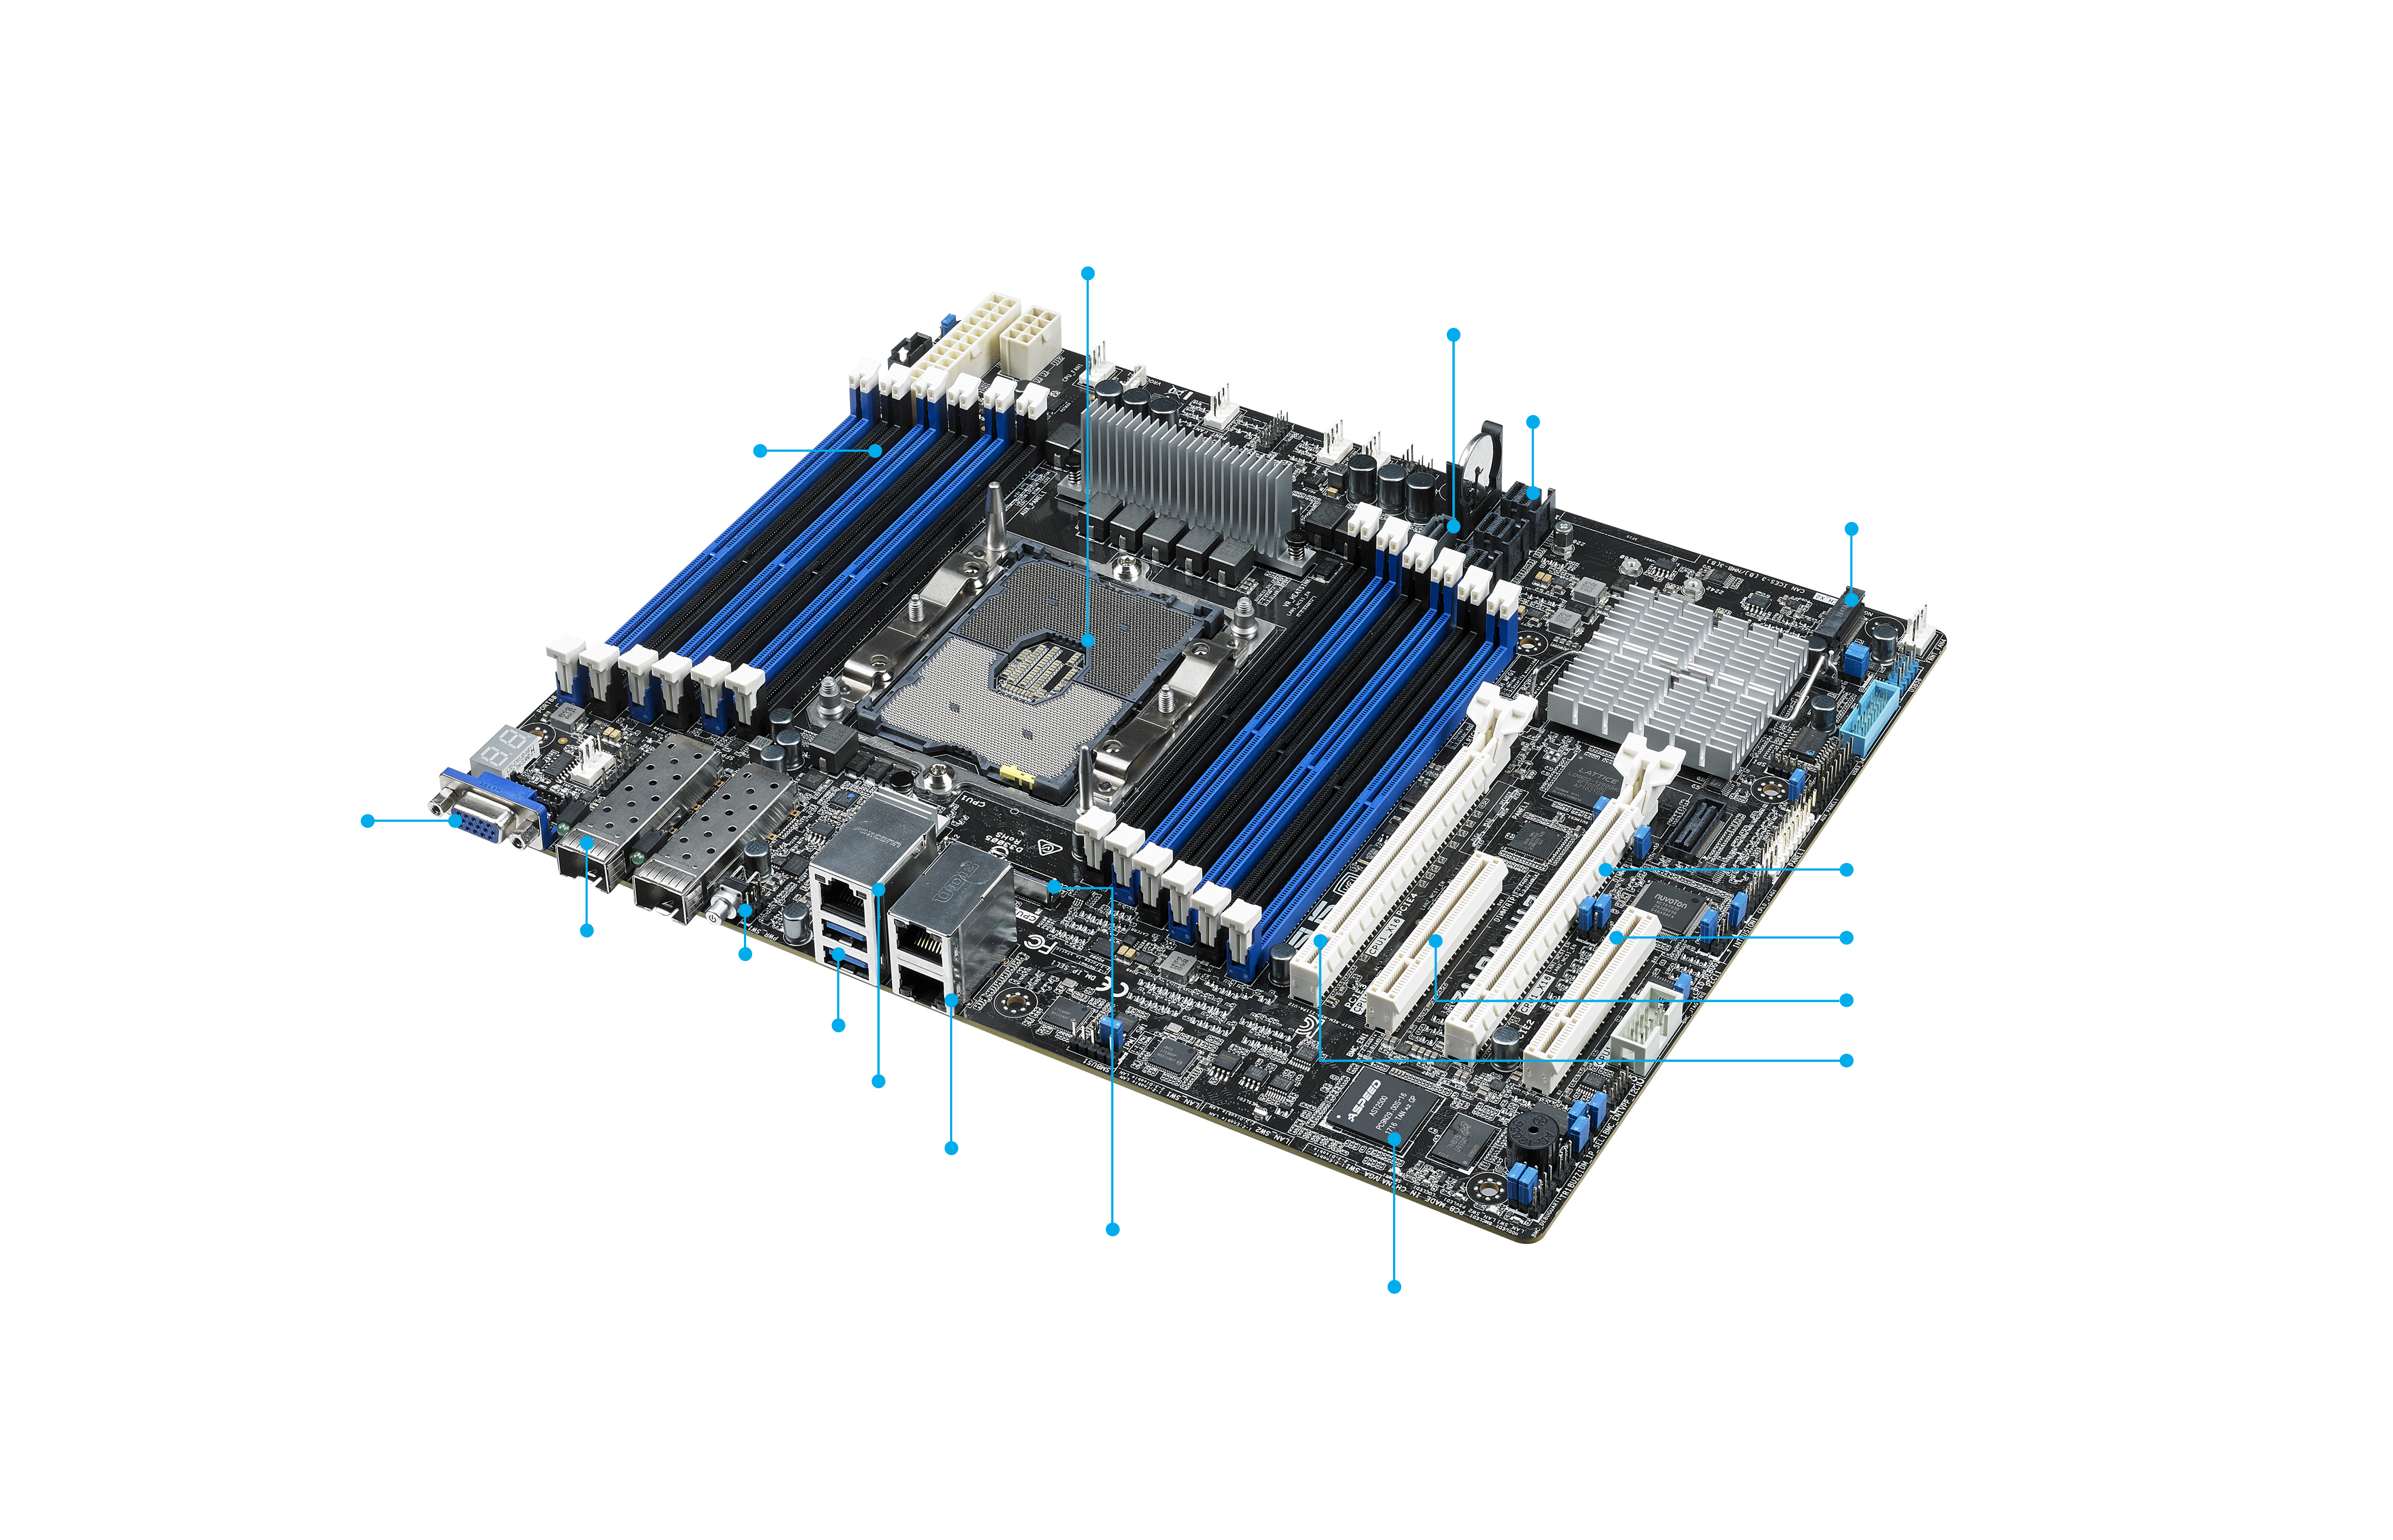 Z11pa U12 10g 2s Servers Workstations Asus Global The Lr Series Circuit Electronics Rdimm Dimm Lrdimm 3ds